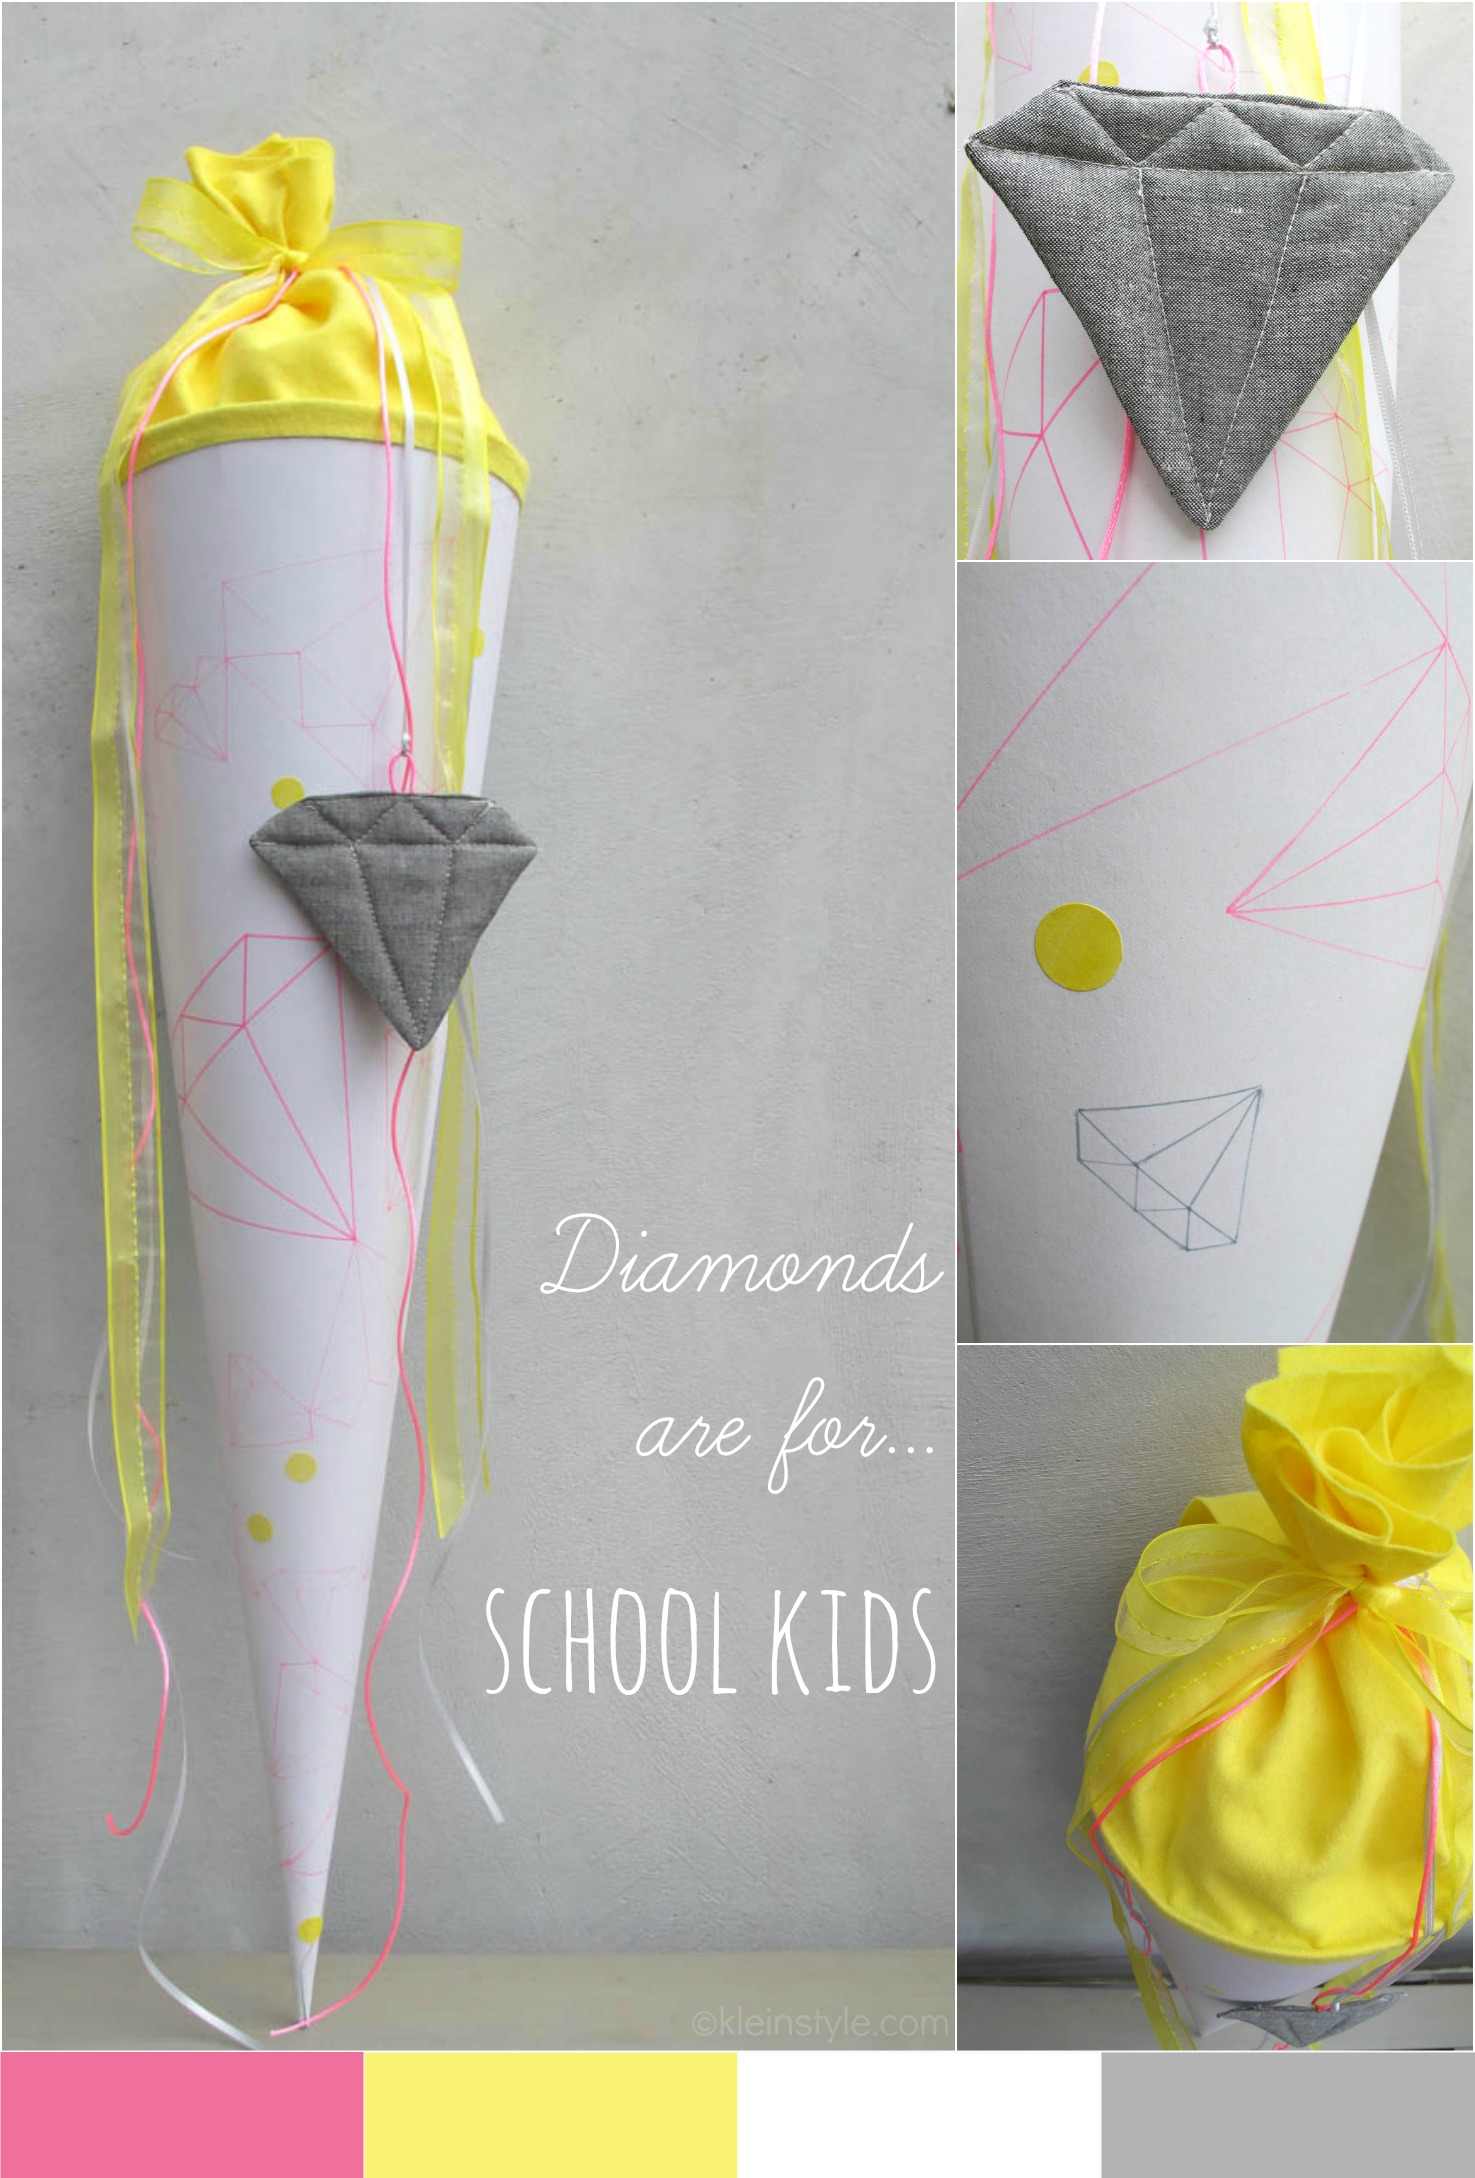 Schultüte : Diamonds are for… school kids!